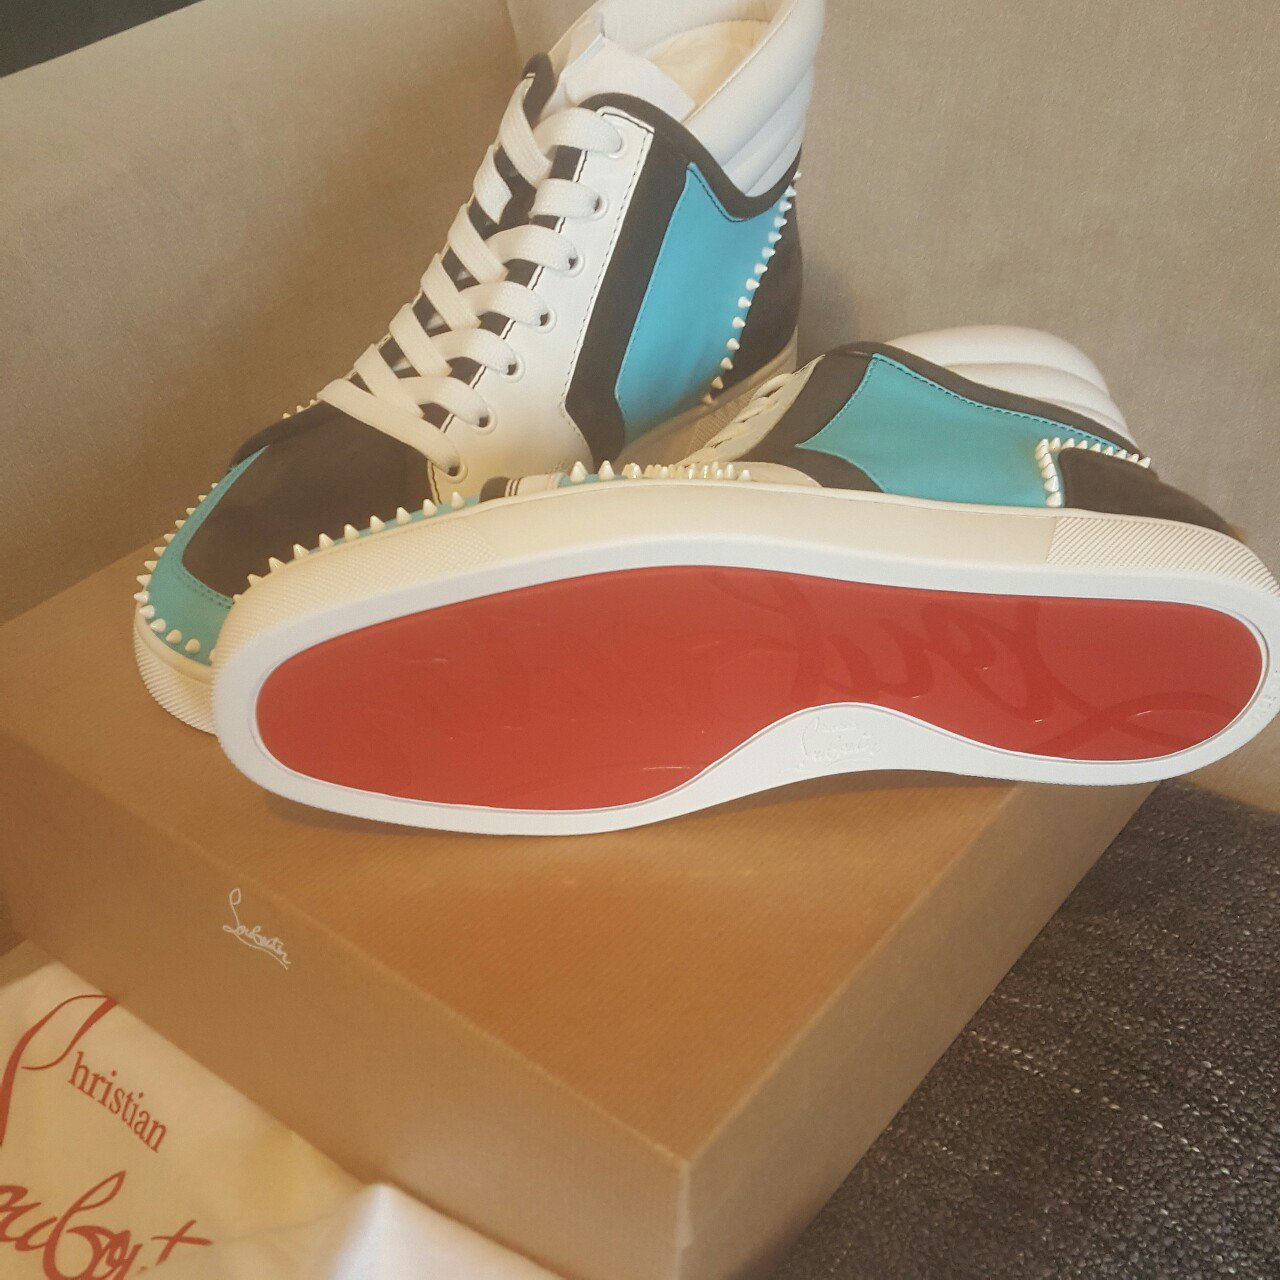 197439ceda52 Christian Louboutin Mens Trainer Shoes